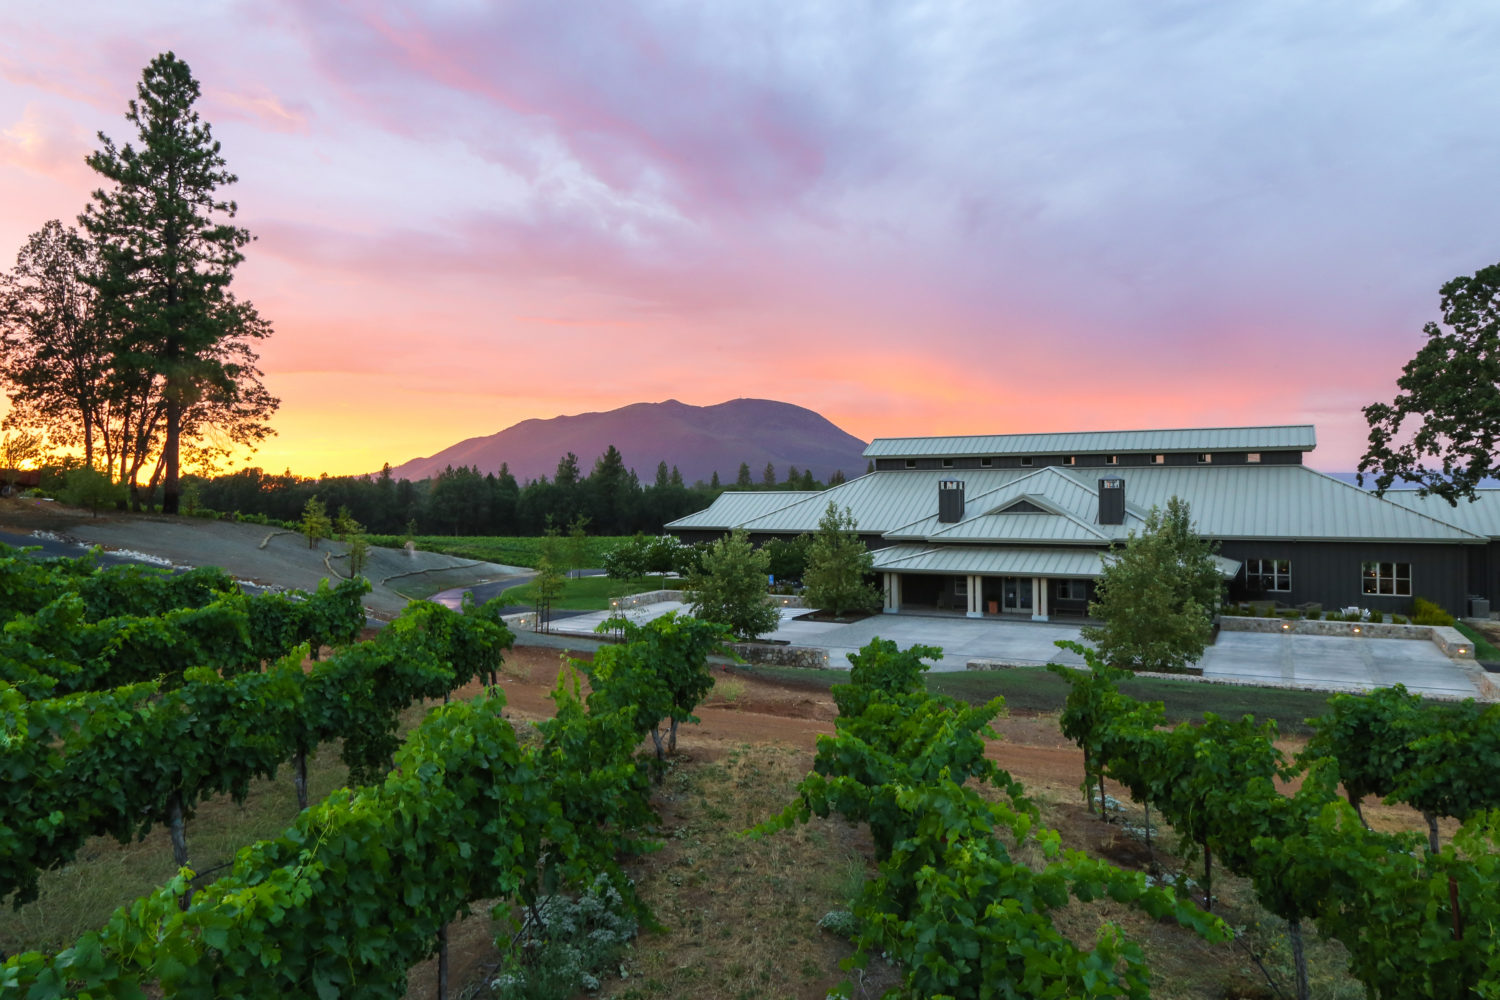 Boatique Winery at sunset (c) Nathan DeHart